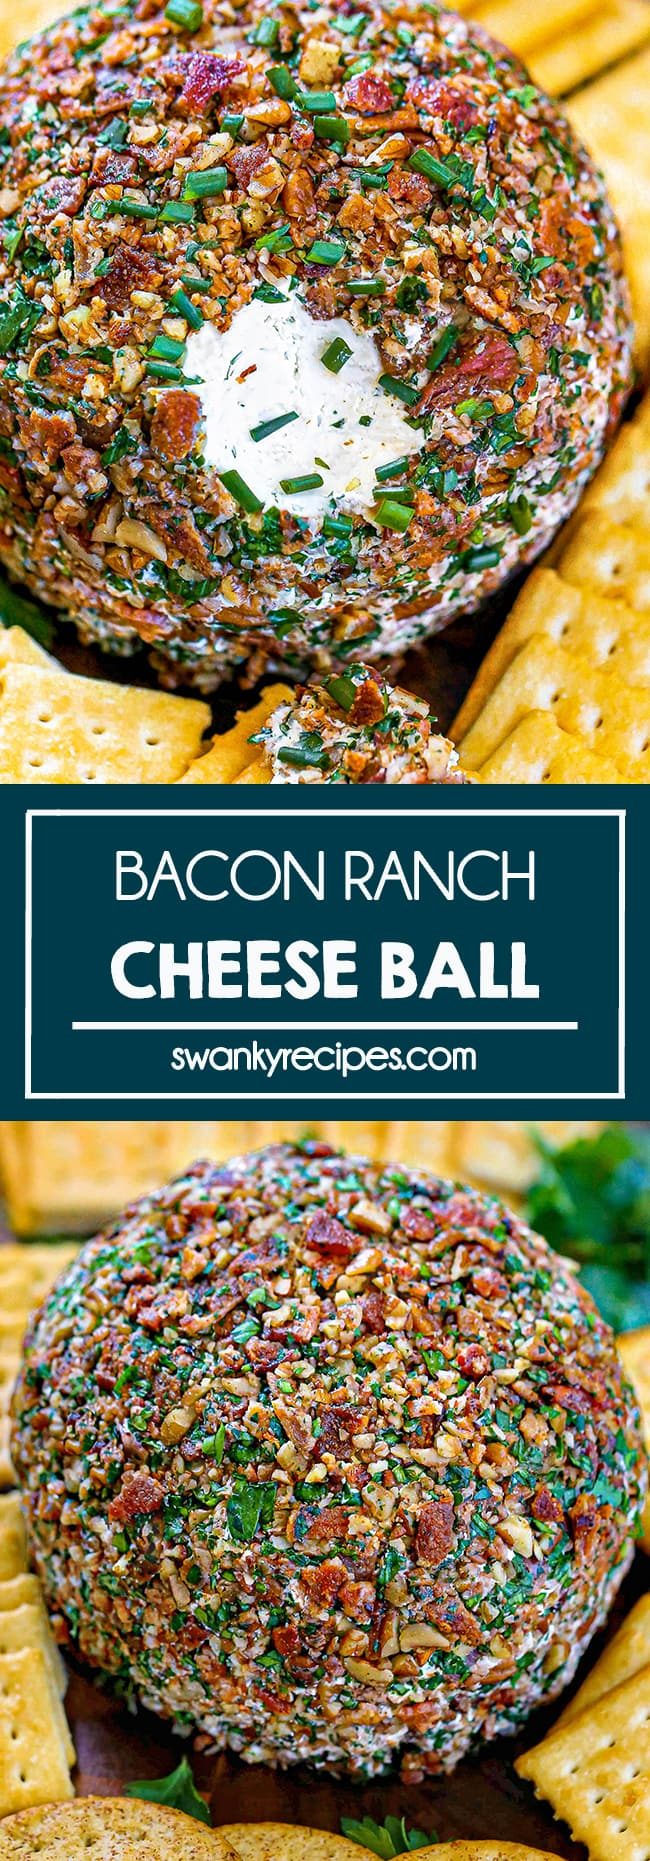 Bacon Ranch Cheese Ball - A giant cream cheese ball rolled in pecans, chopped bacon, green onions, and parsley. Surrounded by yellow butter crackers. text in center reads bacon ranch cheese ball. Second image features the entire cheese ball with a variety of crackers on a wooden board.